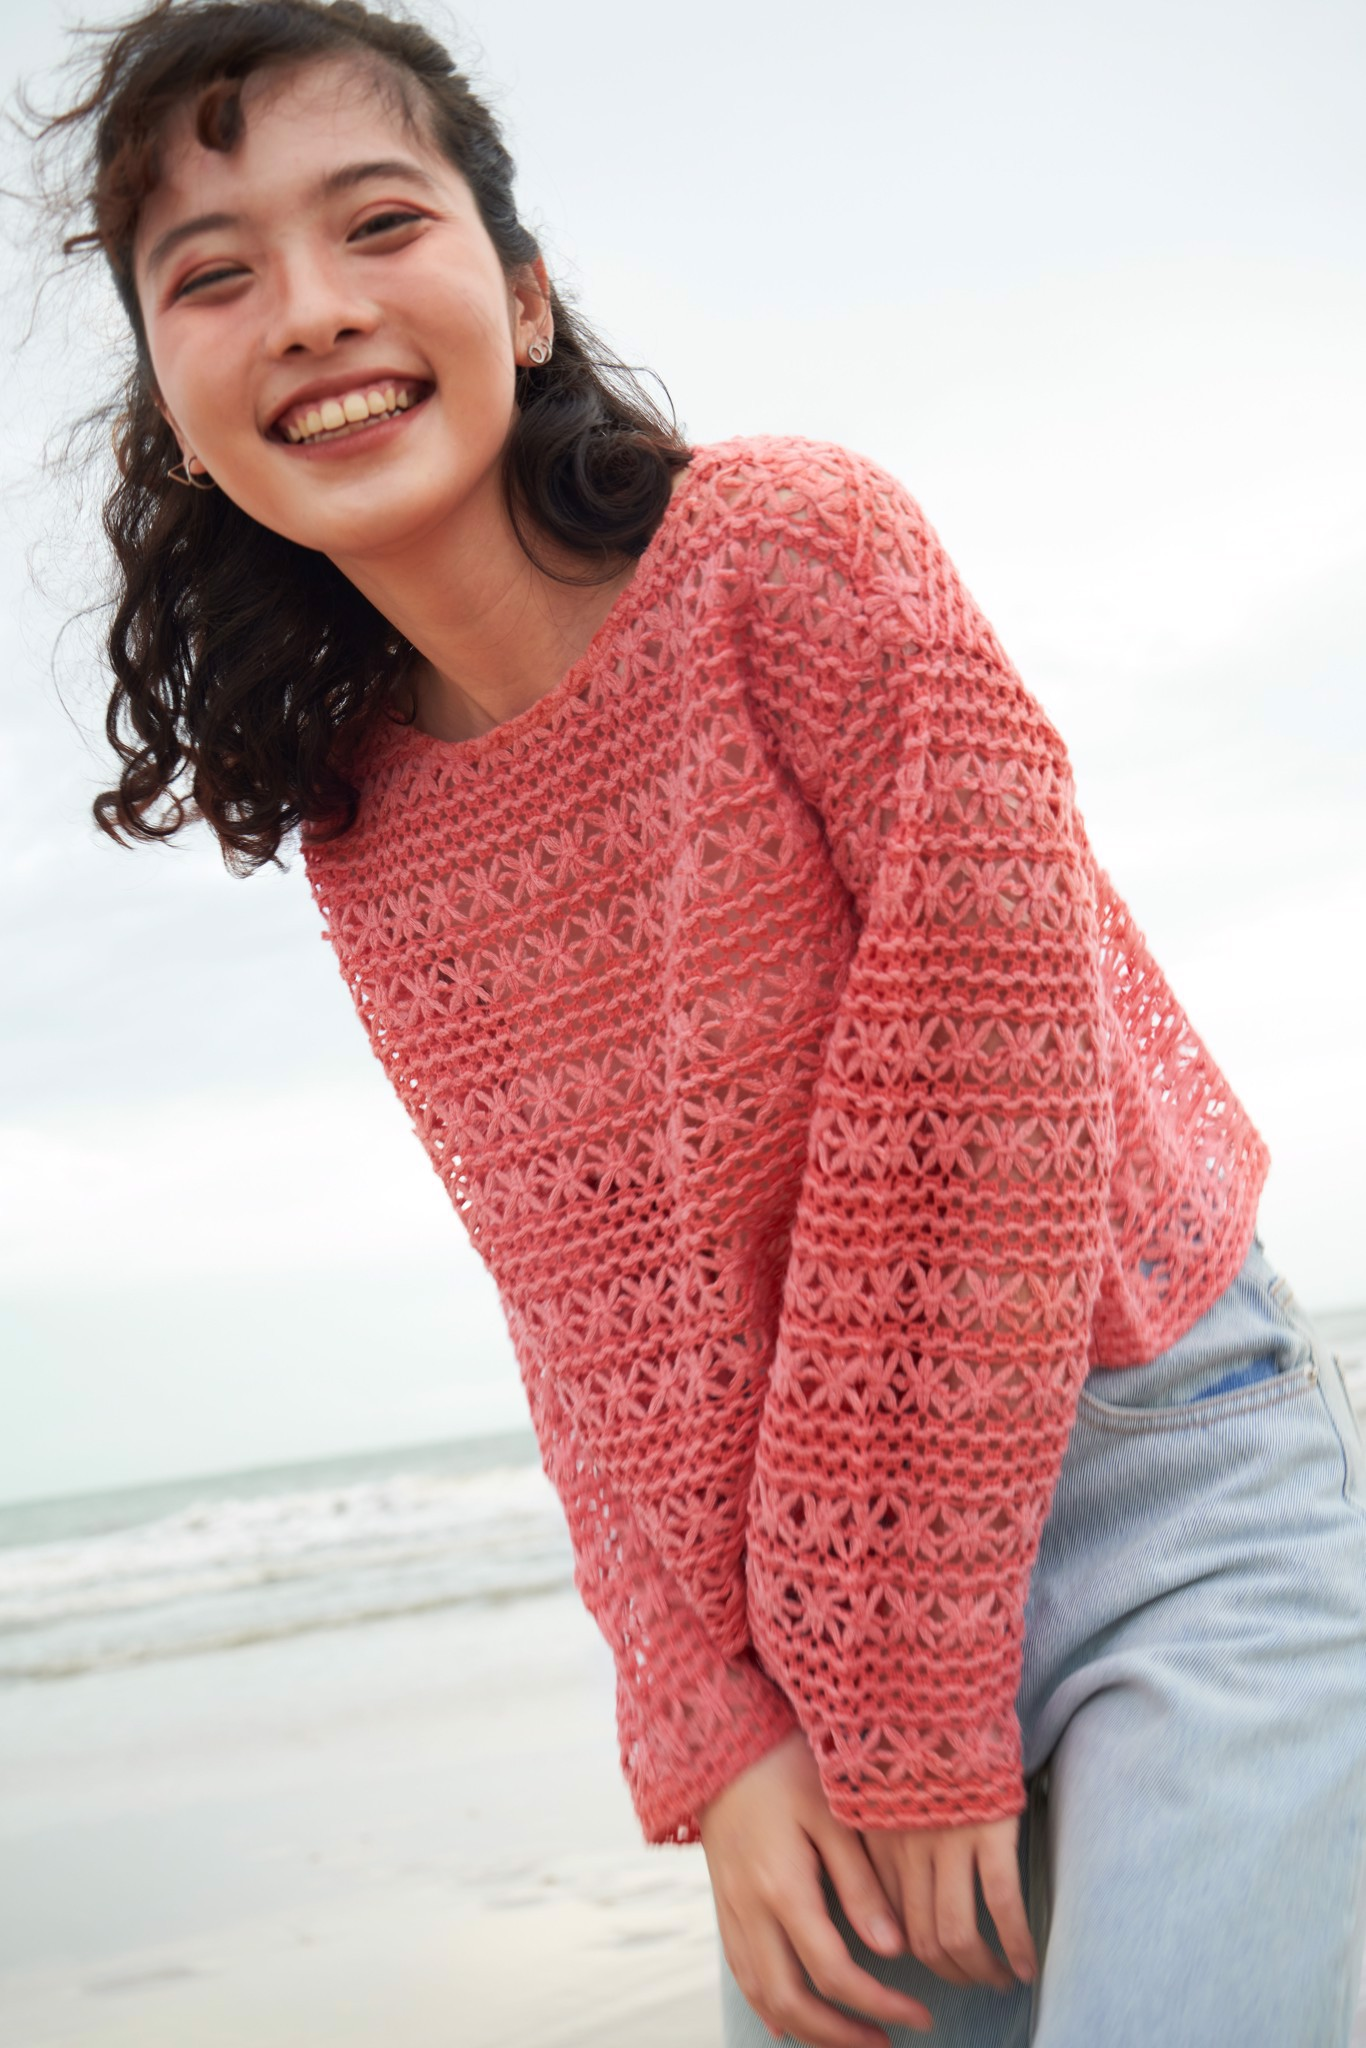 Crochet Boatneck Top